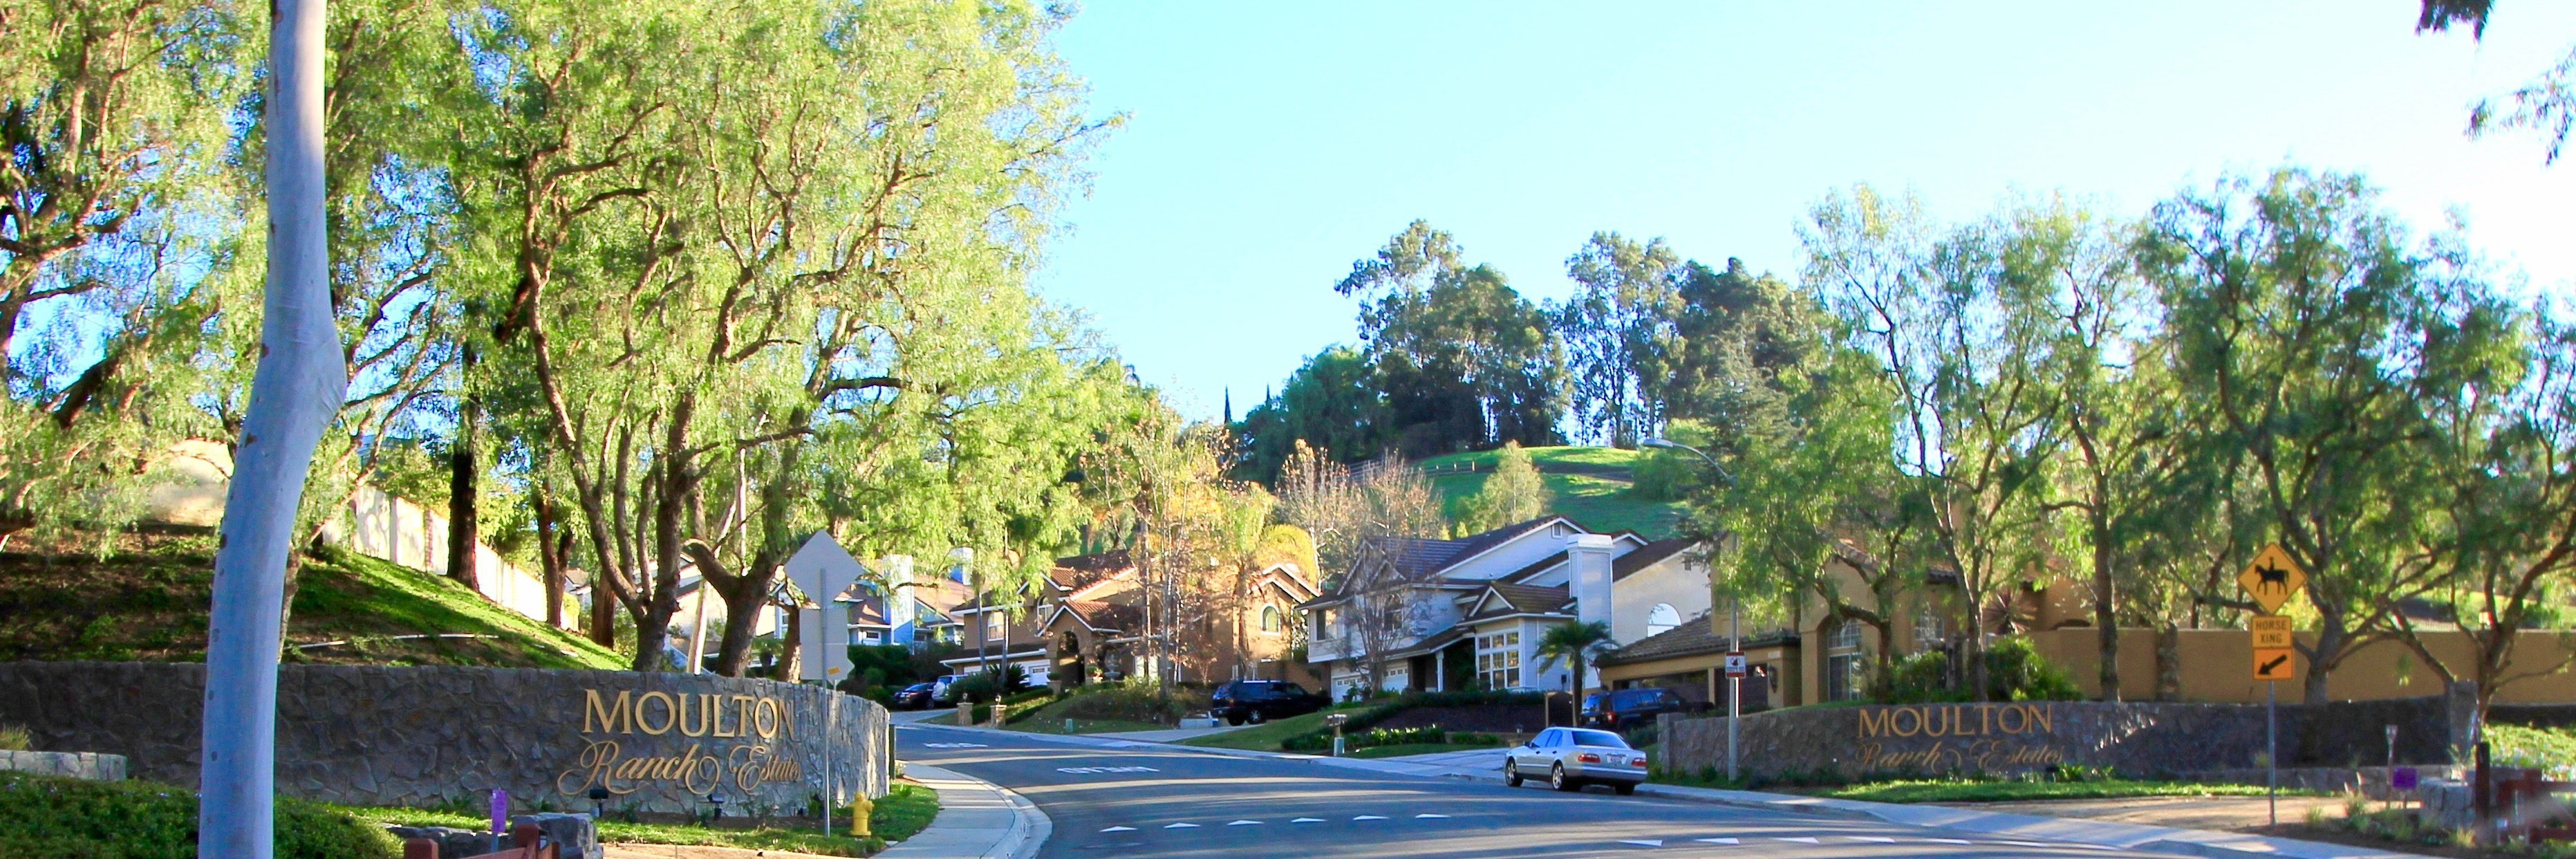 Moulton Ranch is a community in the city of Laguna Hills CA